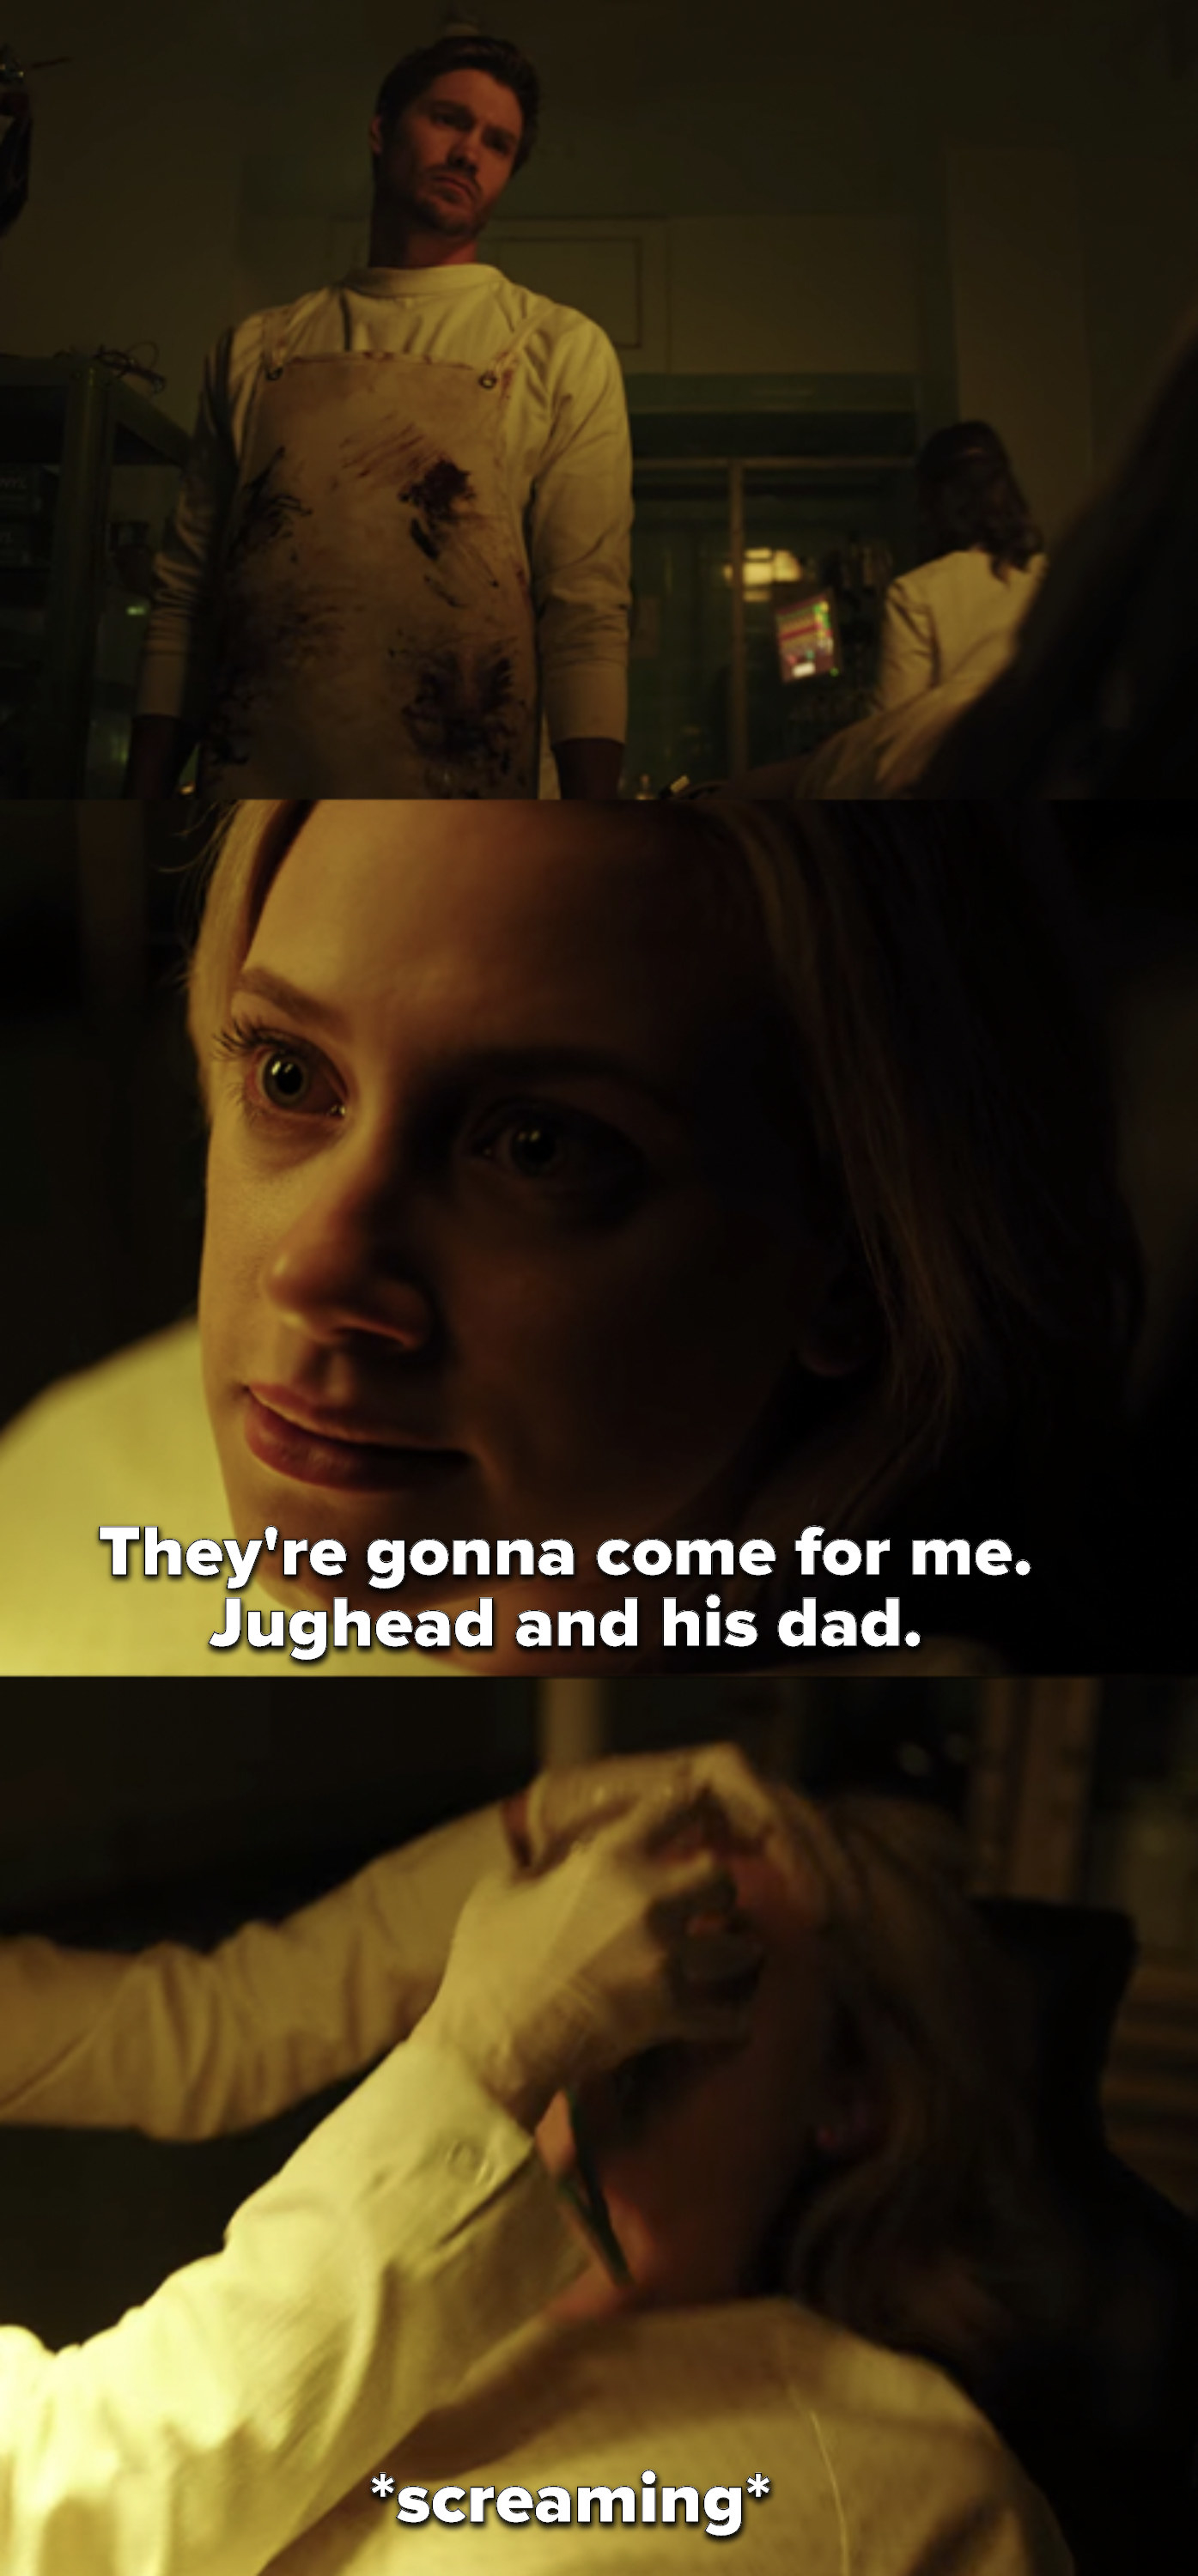 Betty, in a small operation room with Edgar, says Jughead and his dad will come for her, then screams as she's drugged